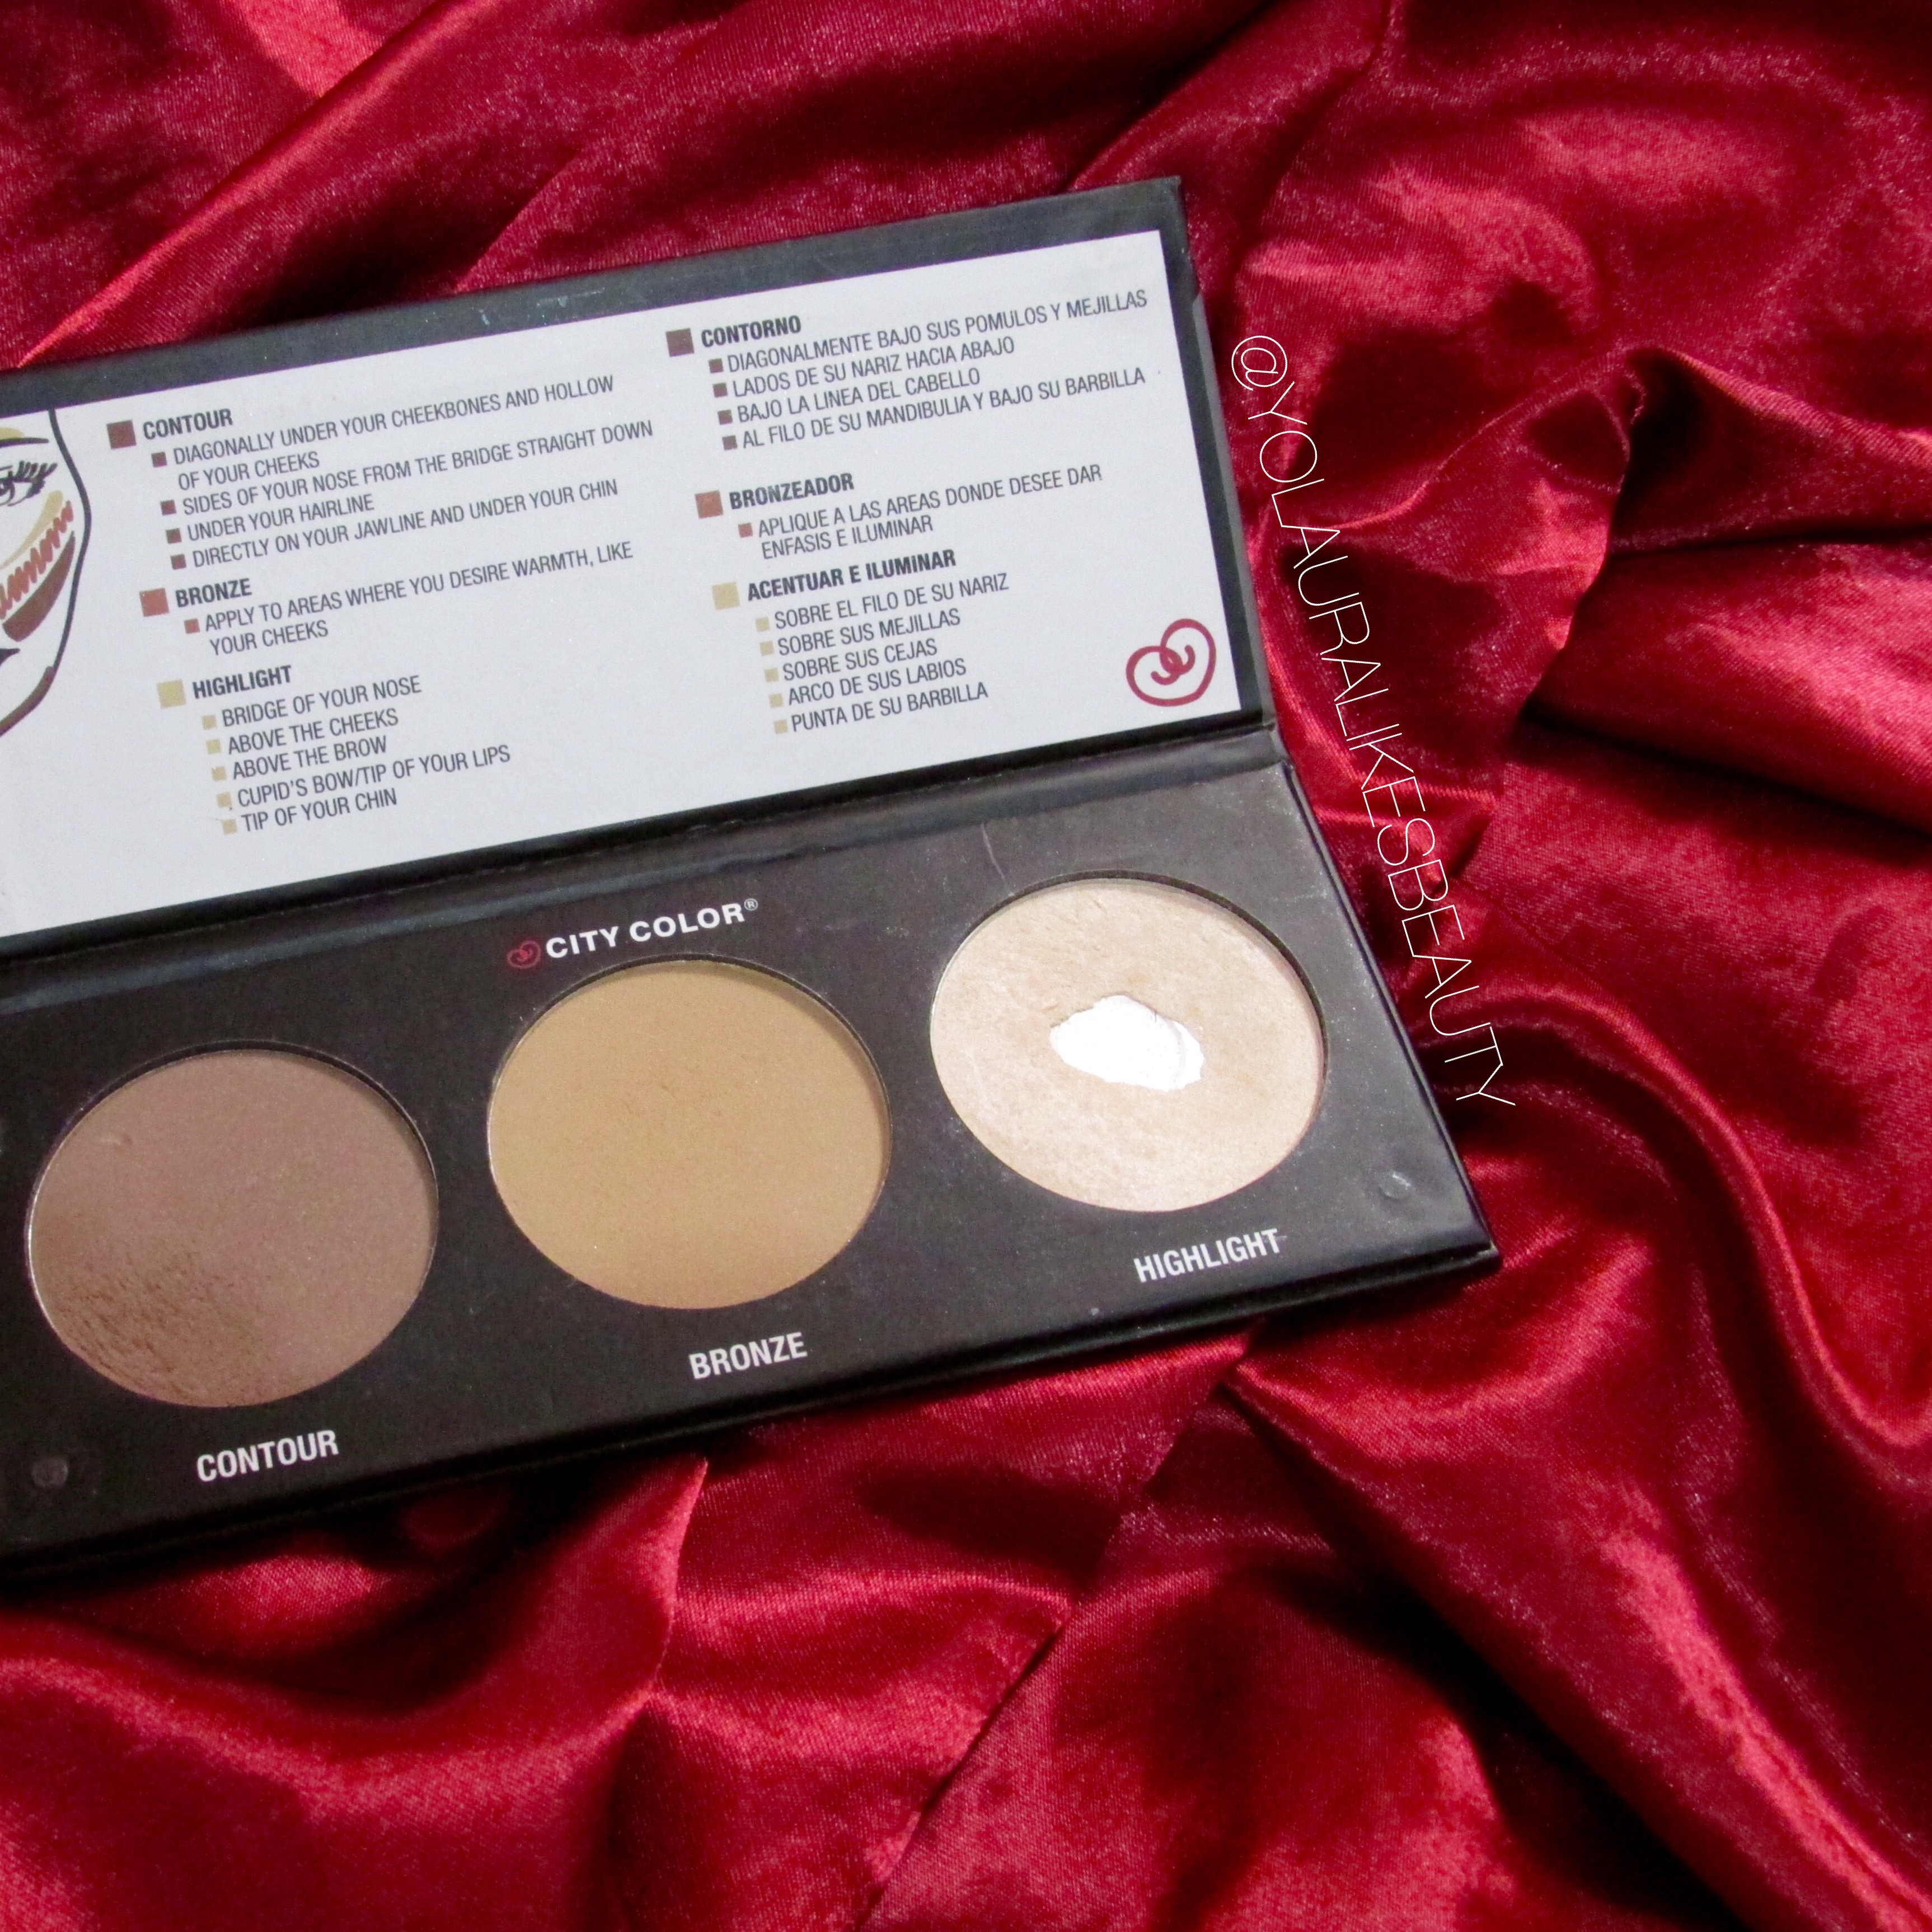 City Color Cosmetics Contour Effects 2 Product Review